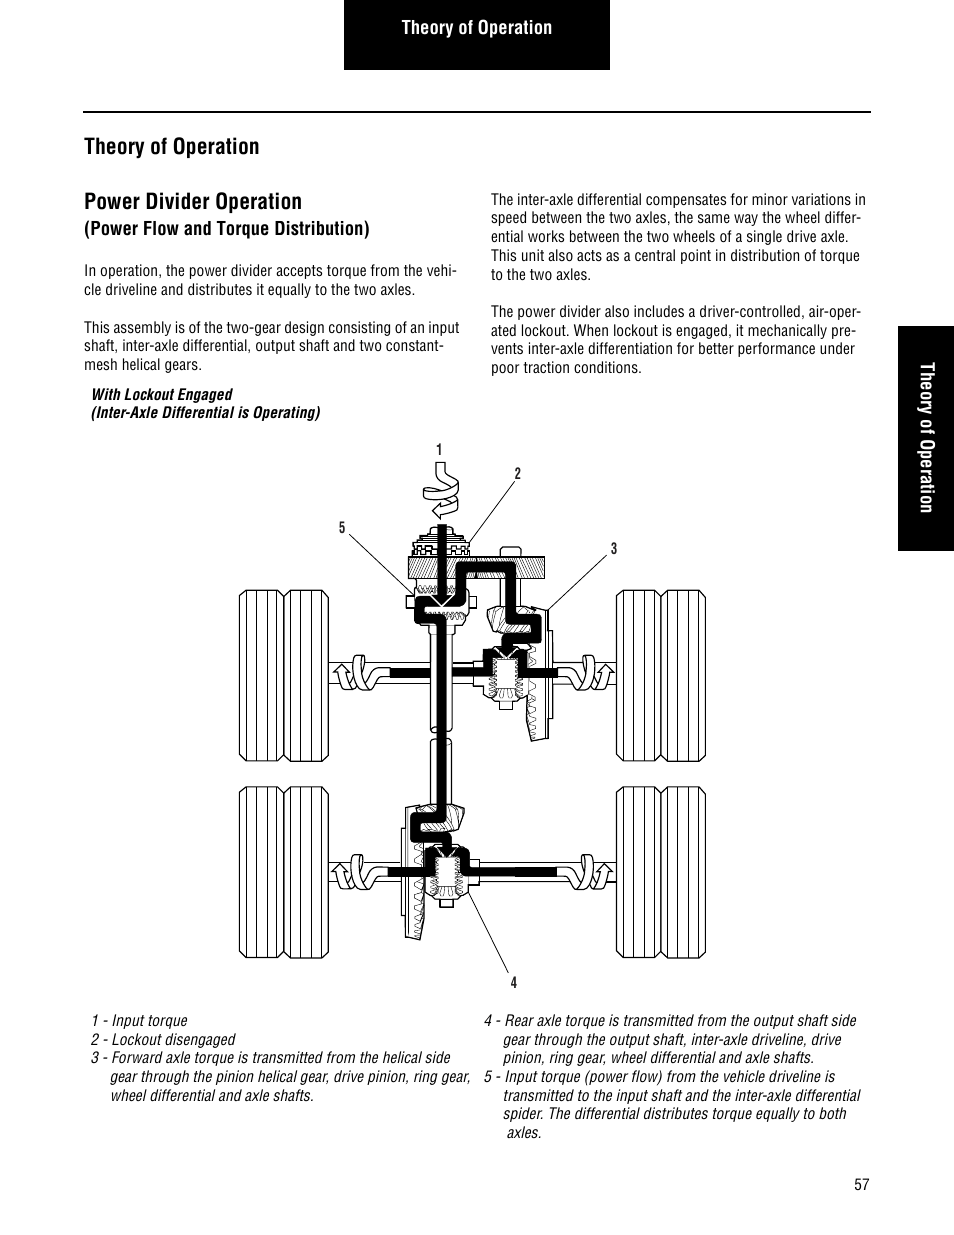 medium resolution of theory of operation power divider operation power flow and torque distribution spicer convertible tandem axles user manual page 63 72